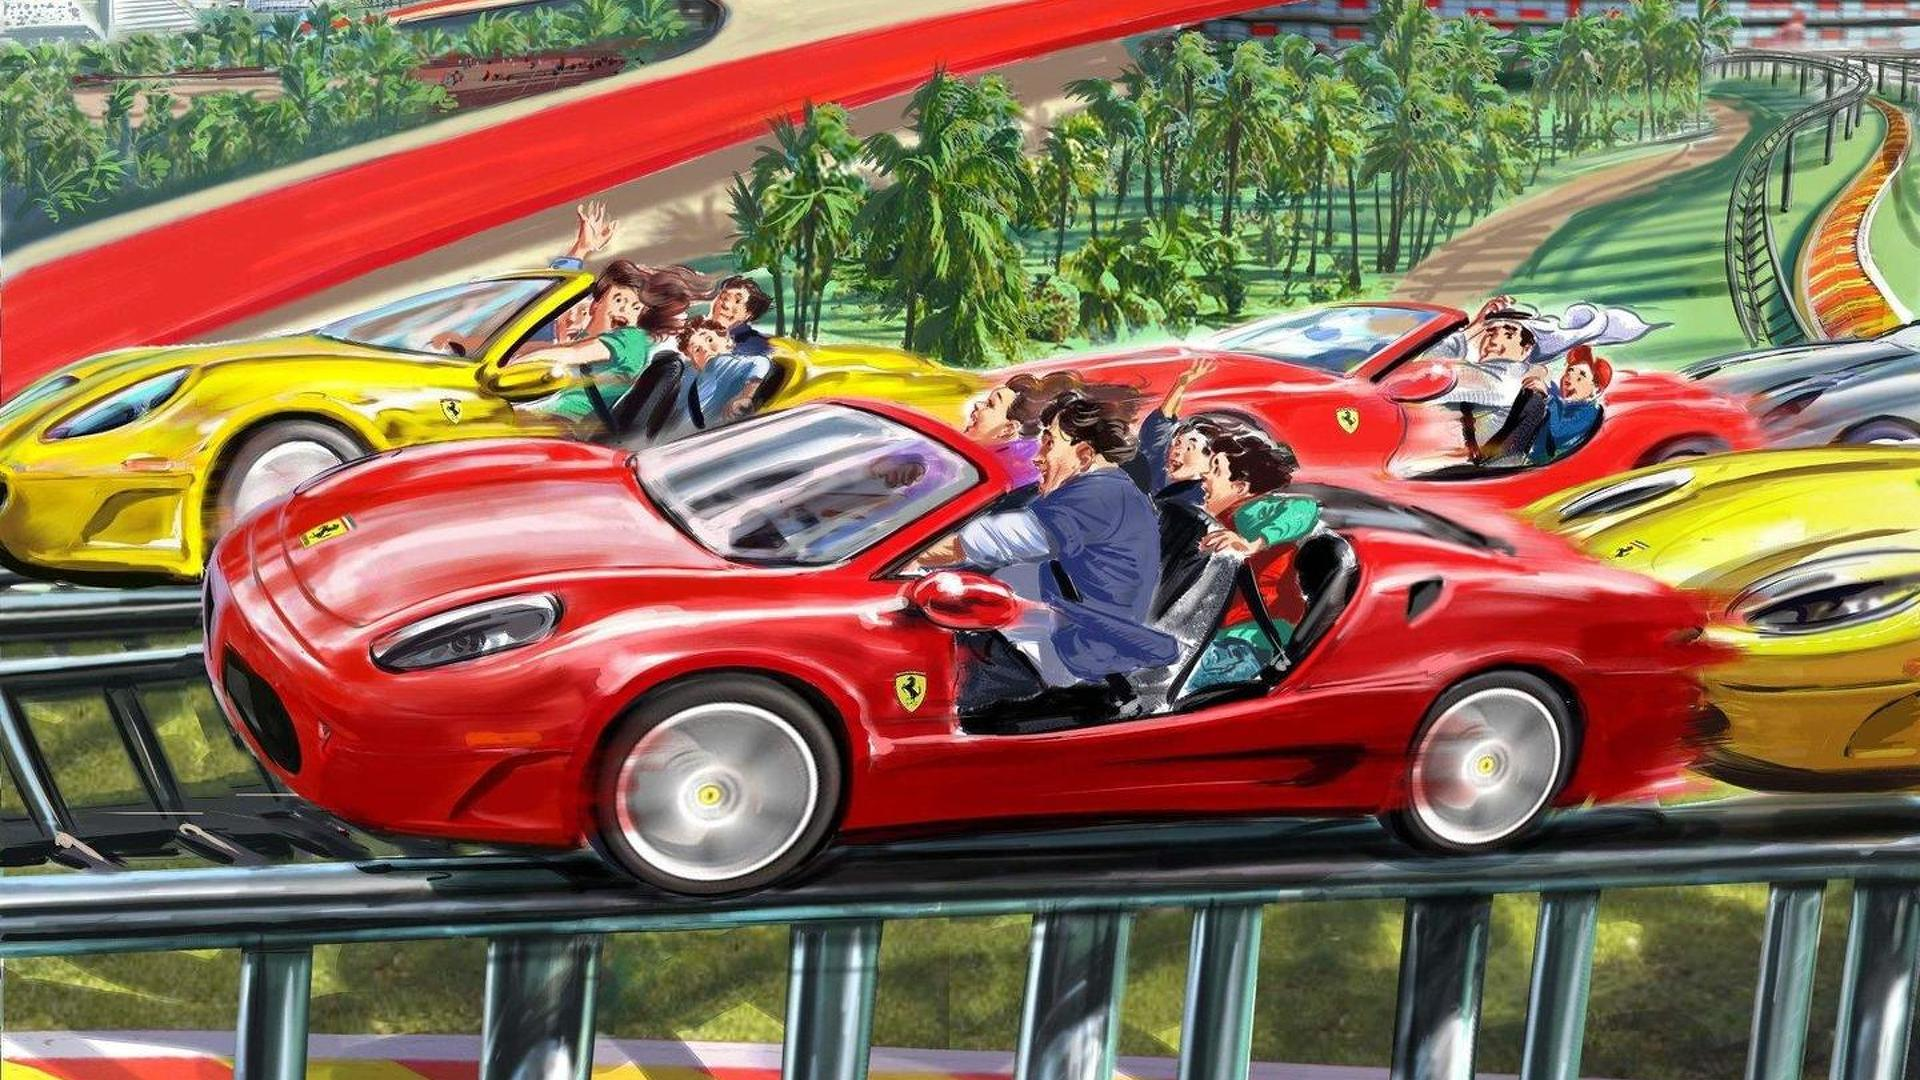 ferrari world abu dhabi reveals attractions and rides. Black Bedroom Furniture Sets. Home Design Ideas